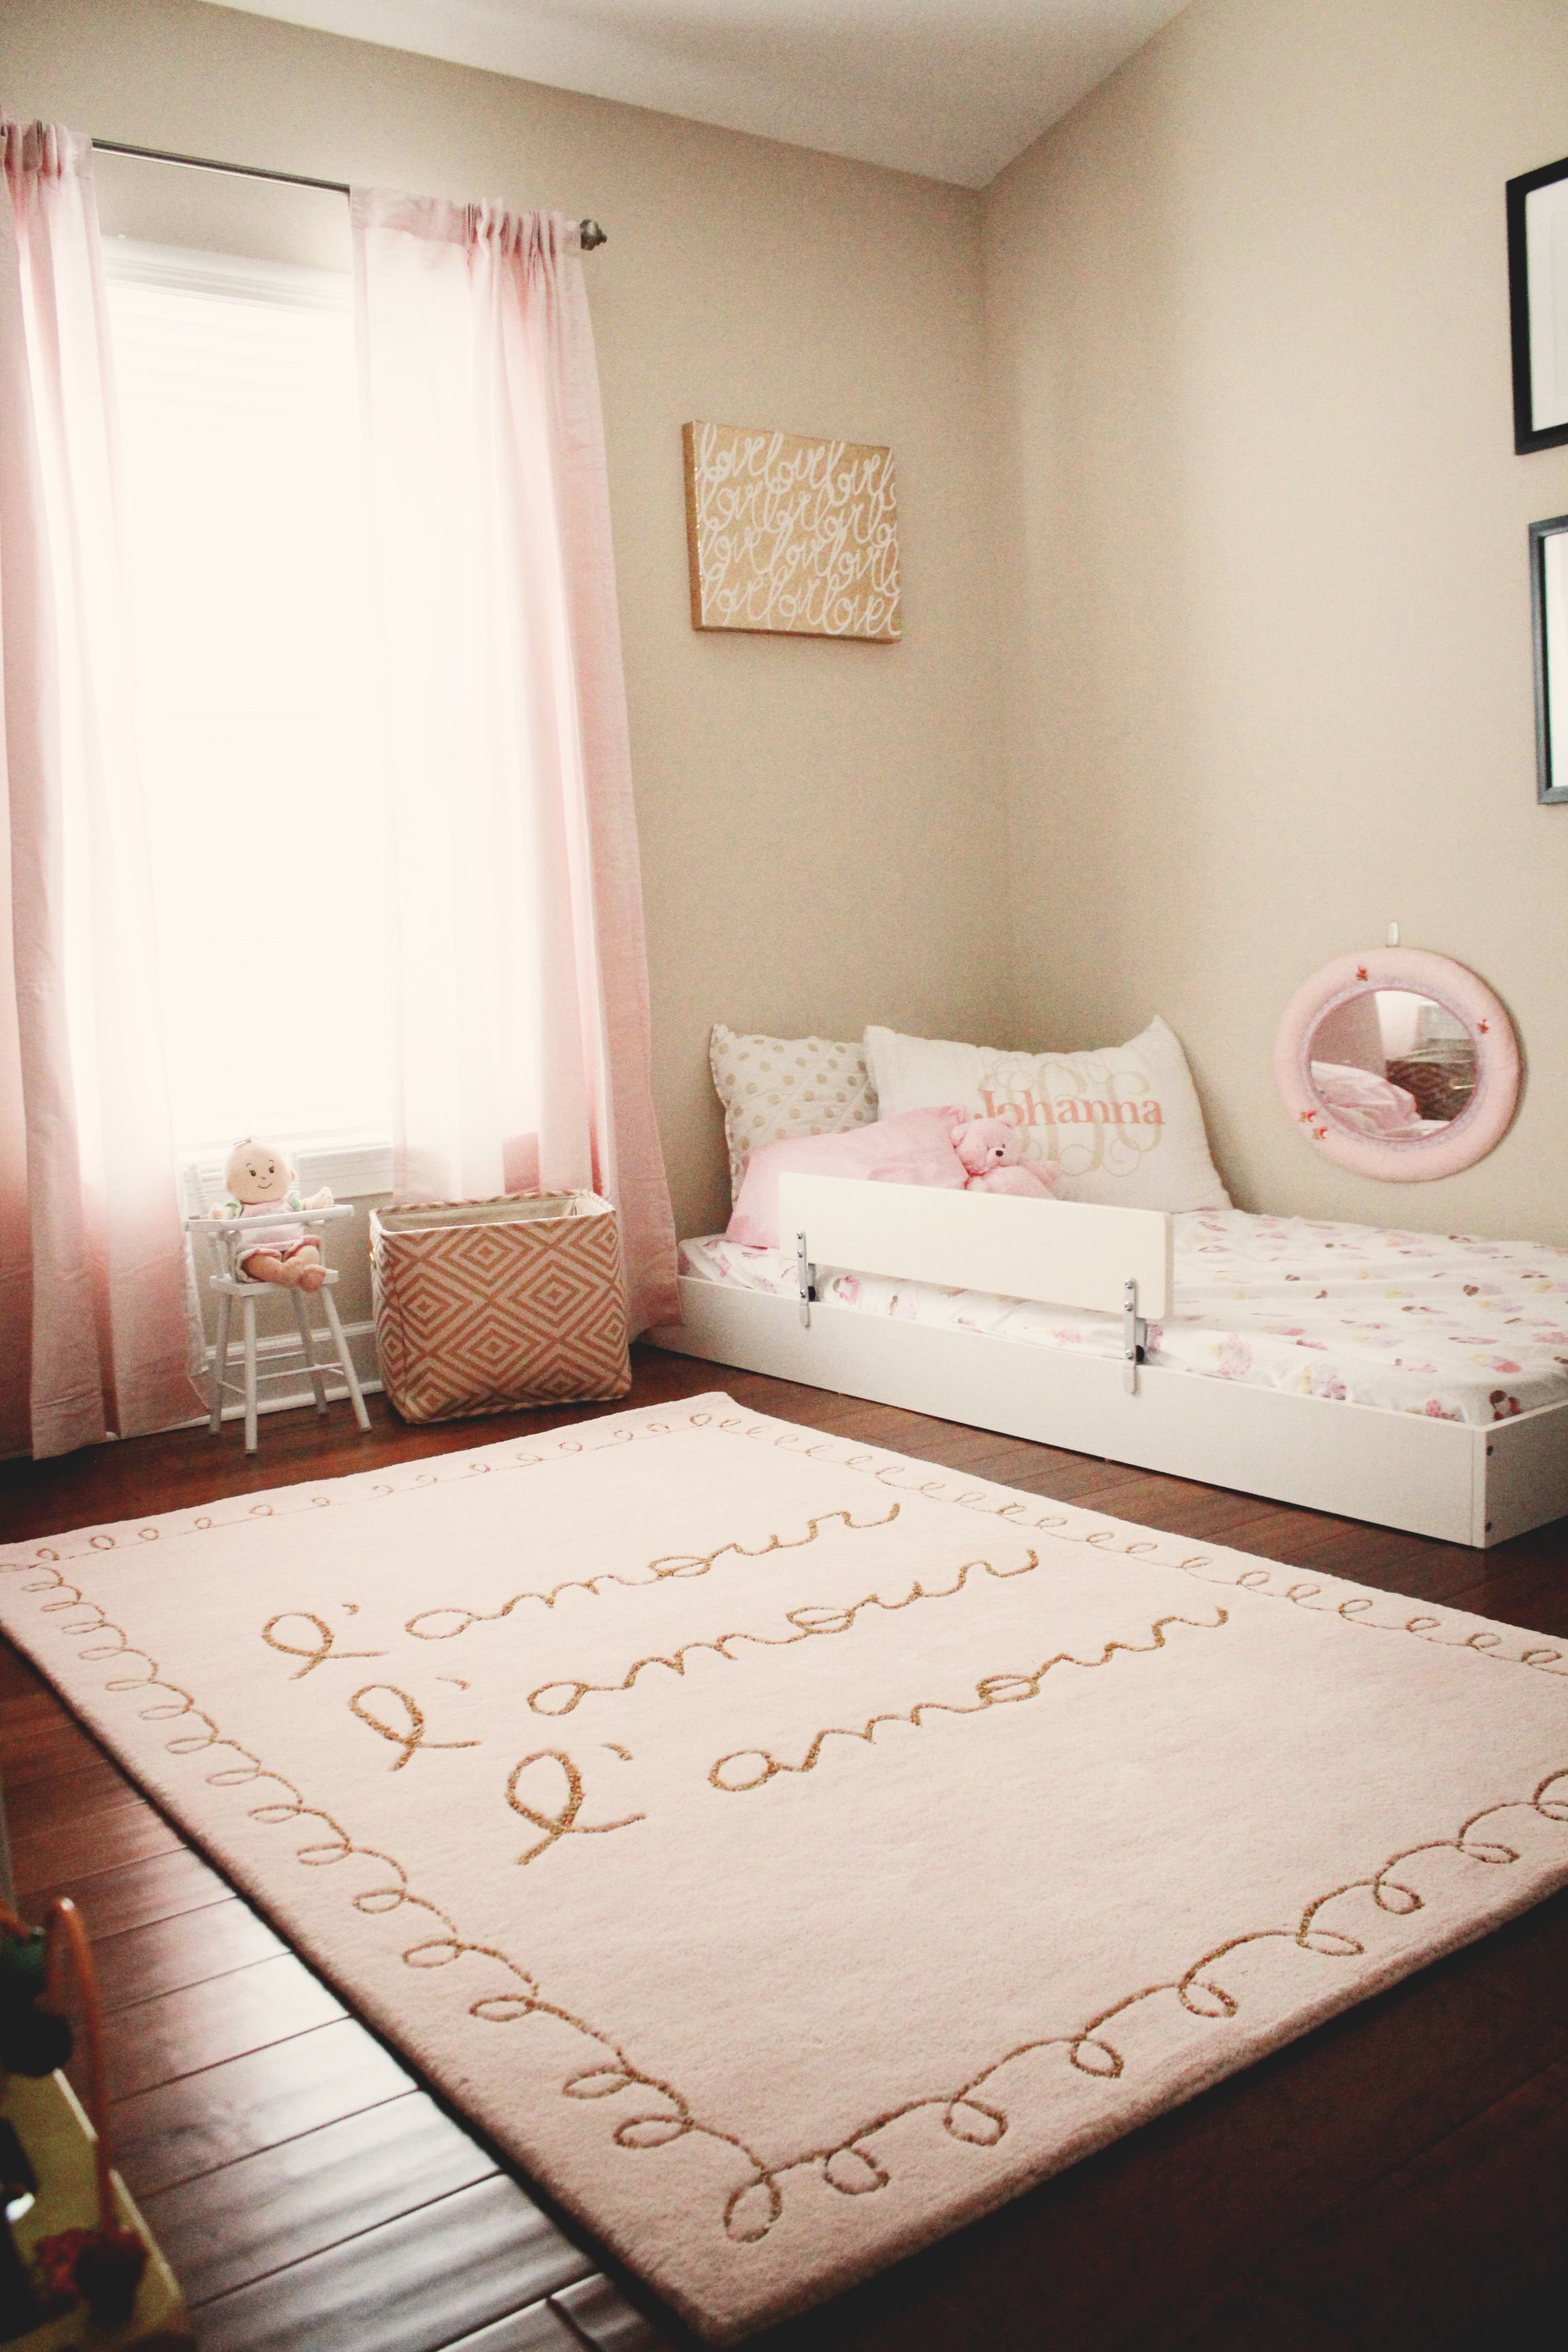 Montessori Floor bed-Toddler bed/ Big kid room ideas / Kids decor ...